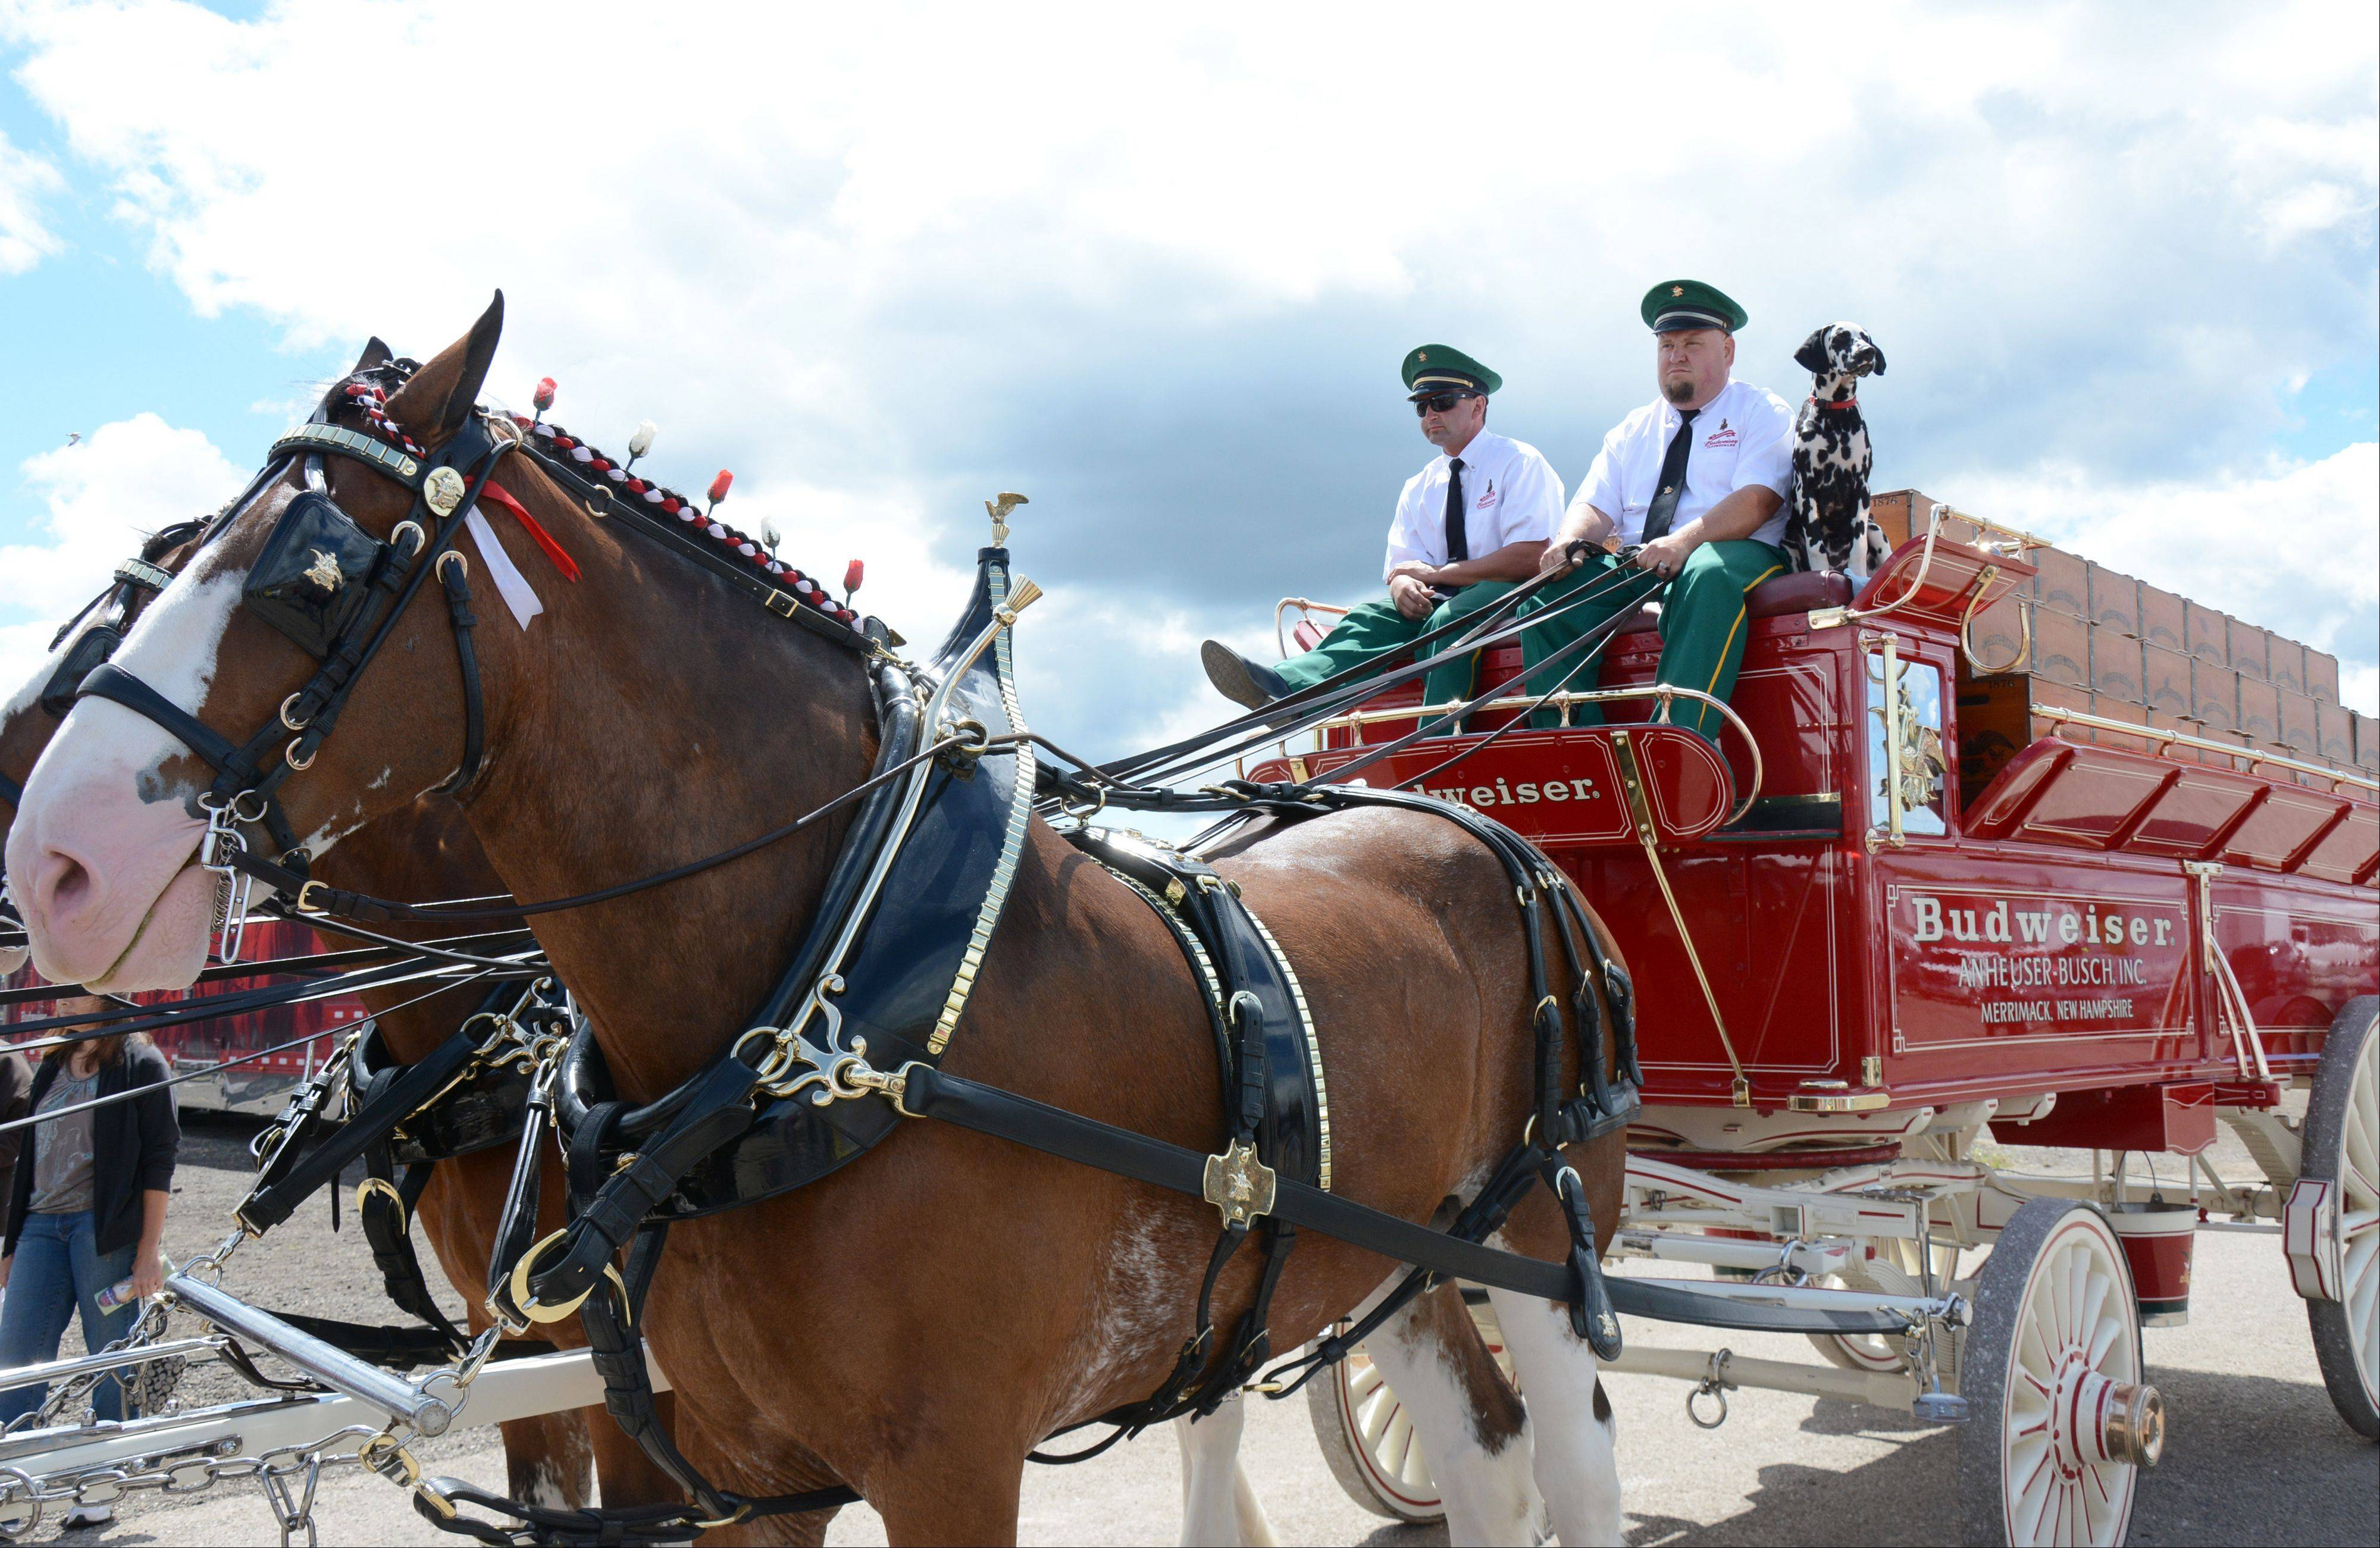 From left, John Nisle, John Clark and Clyde drive the Budweiser Clydesdales at the Lake County Fair Sunday, July 28.